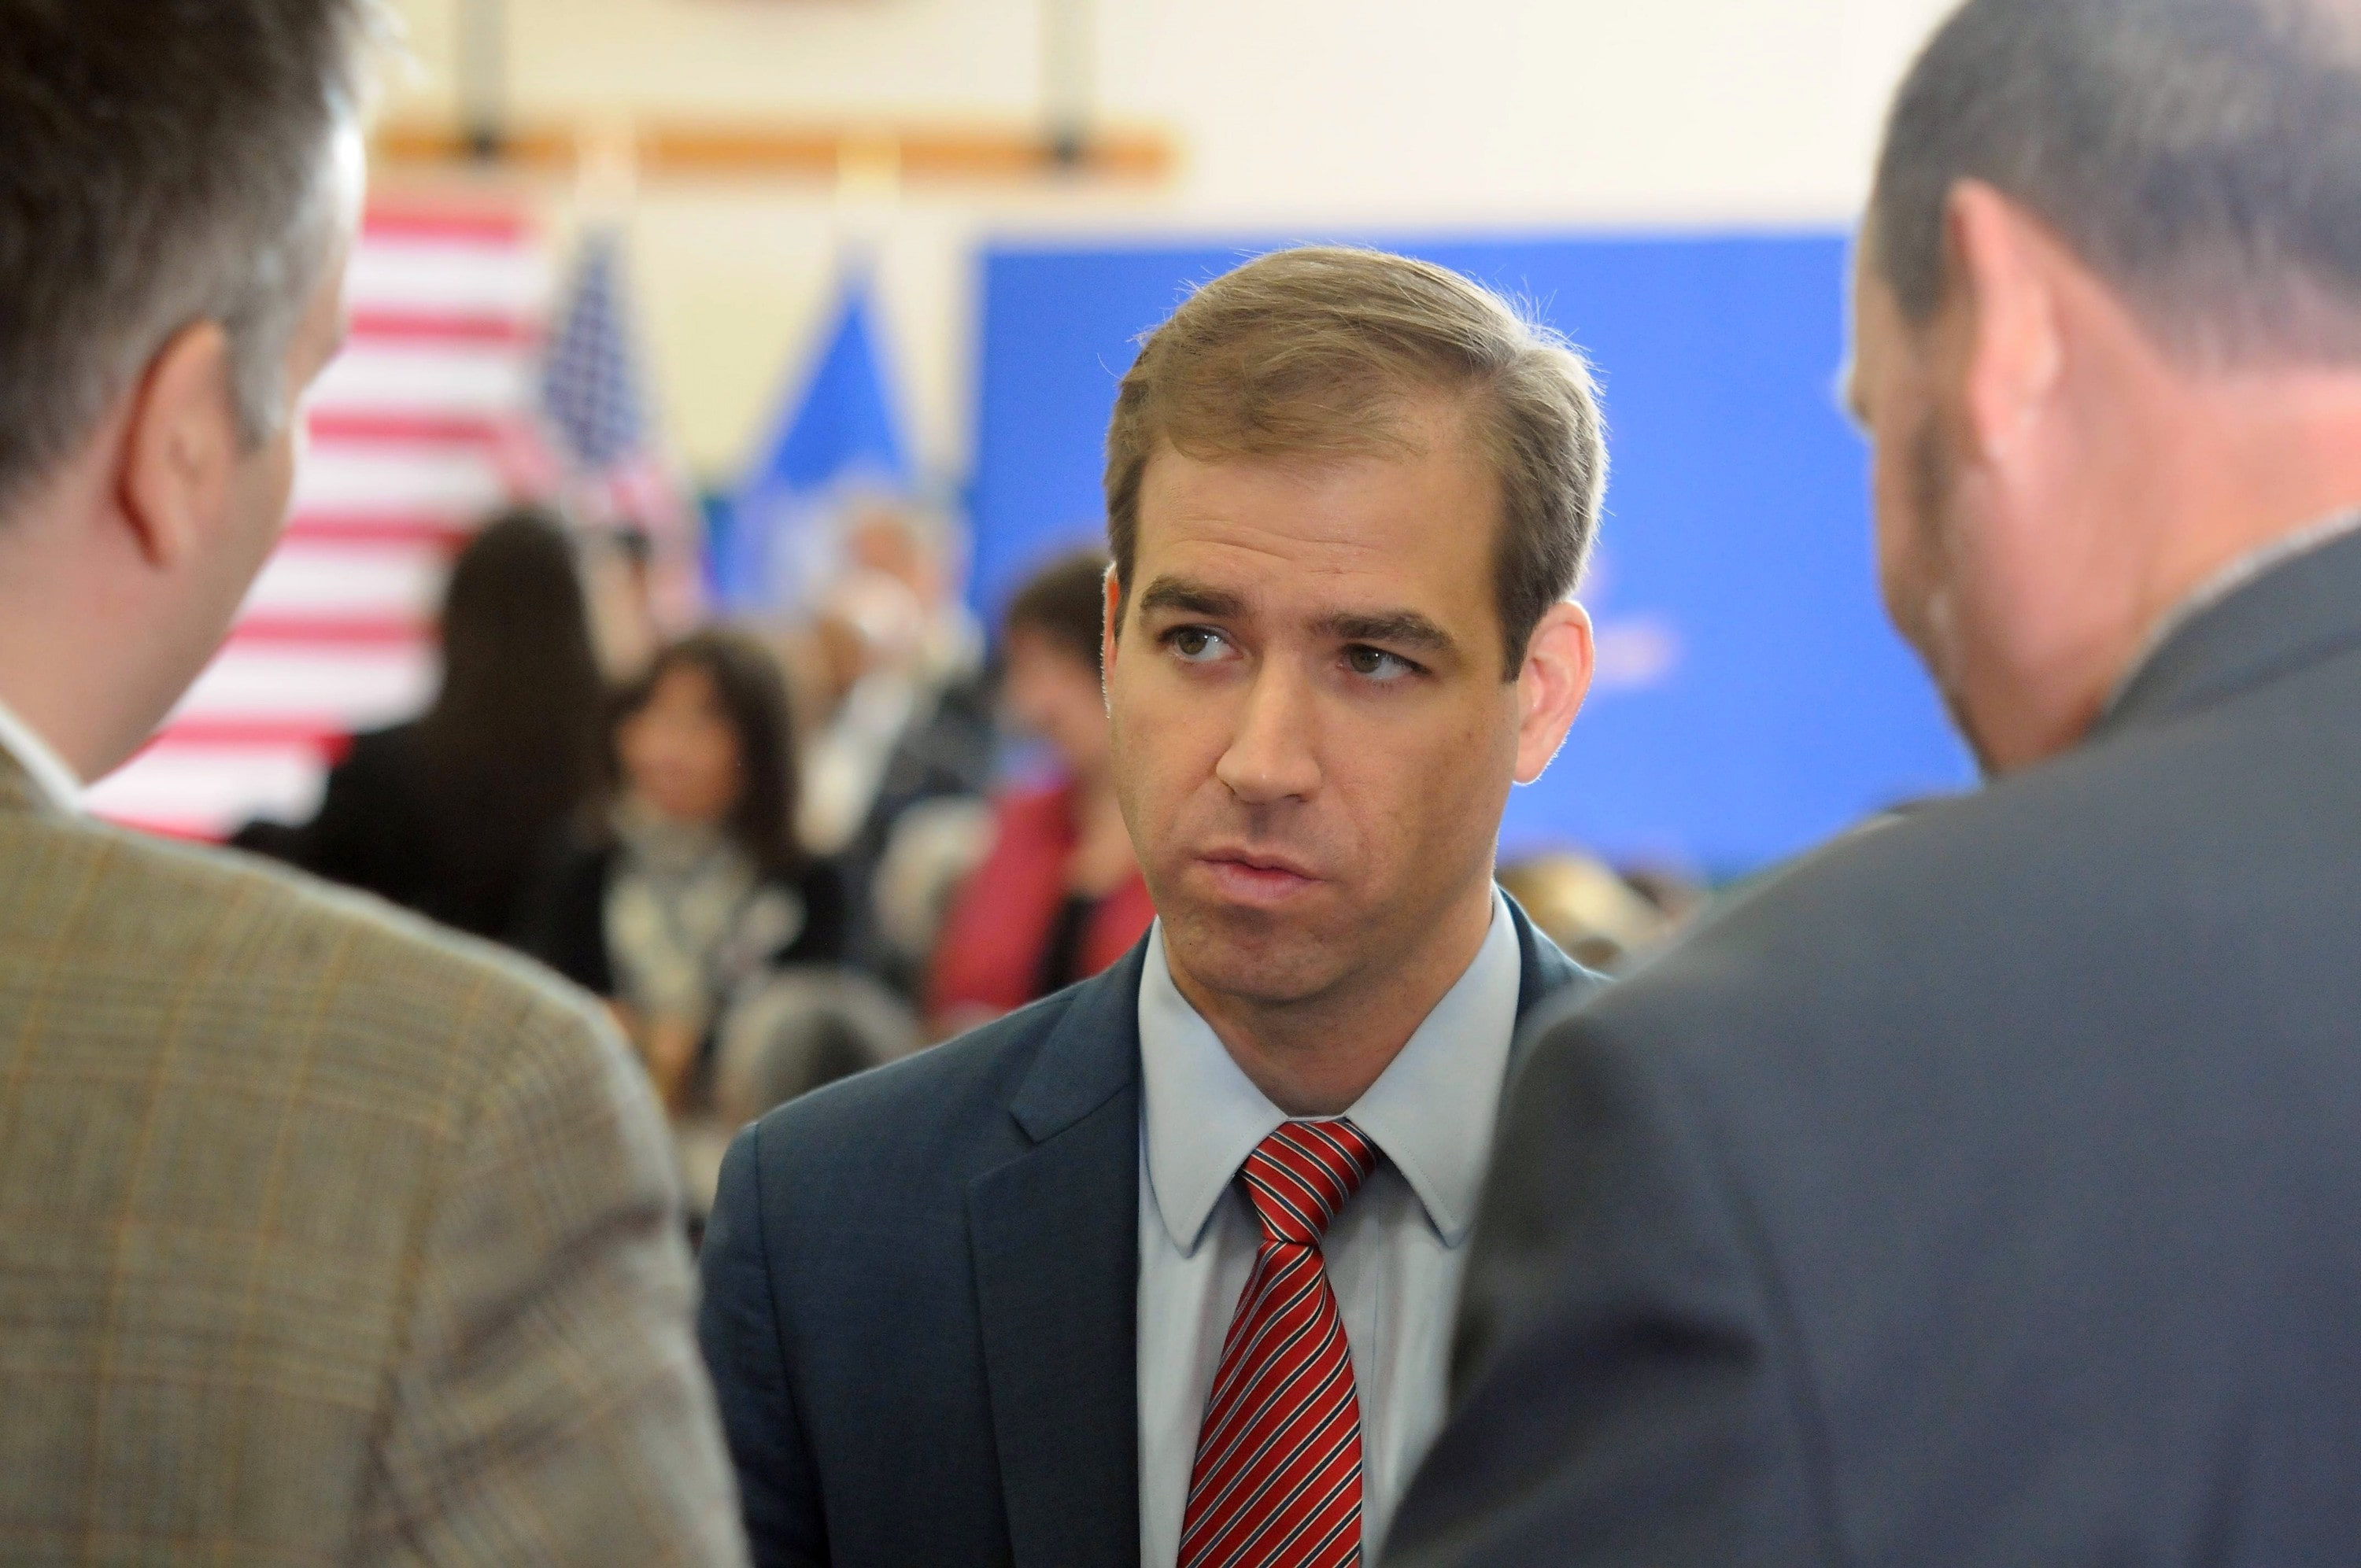 New Steady Habits podcast: Hartford Mayor Luke Bronin makes a pitch to suburbs